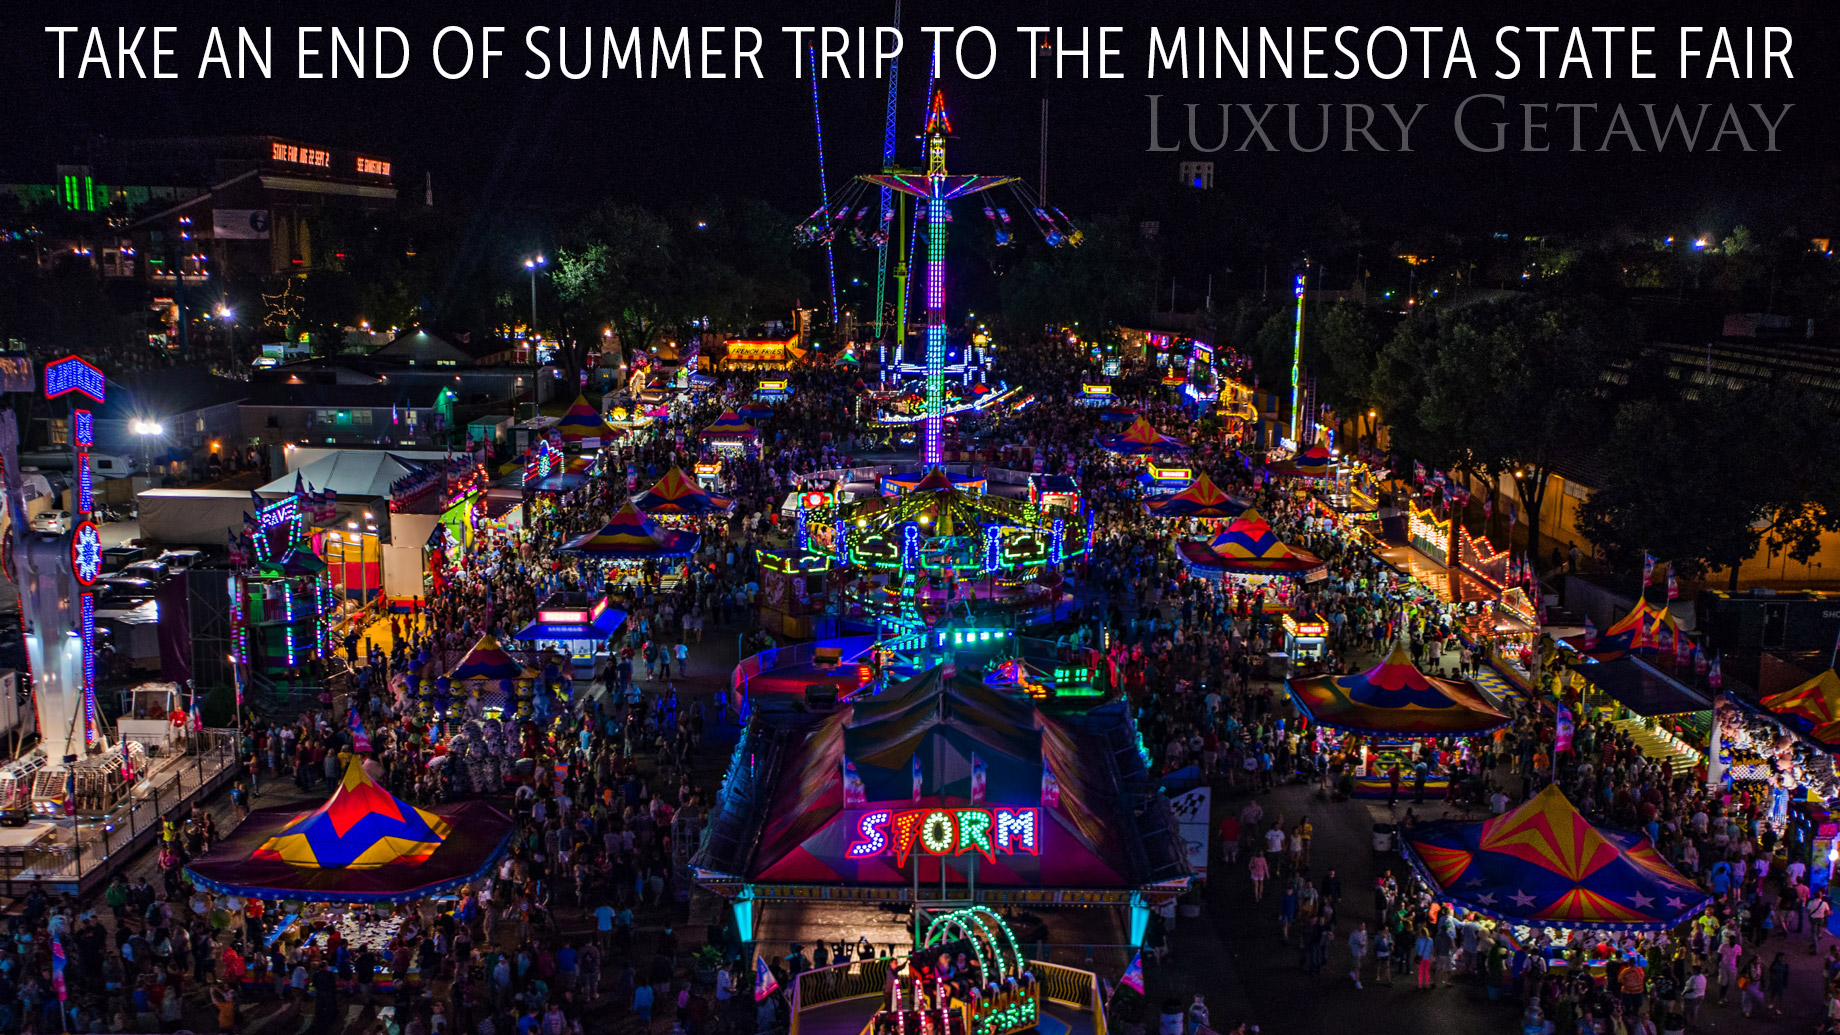 Luxury Getaway - Take an End of Summer Trip to the Minnesota State Fair